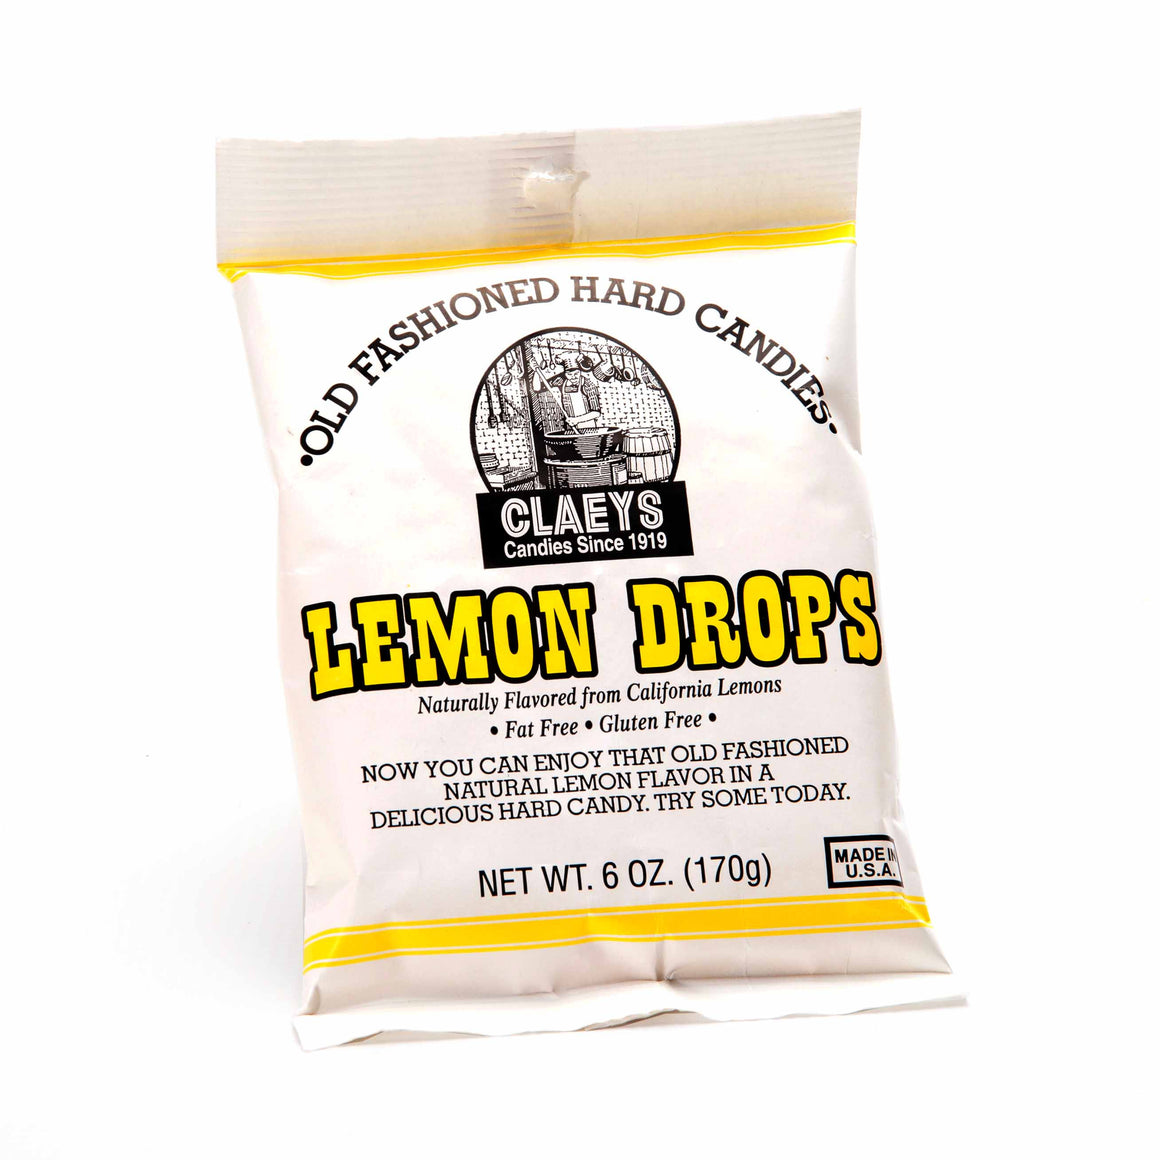 Hydrating Lemon Drops product image - included with Dr. Don's Care Packages Get Well Soon Care Package.